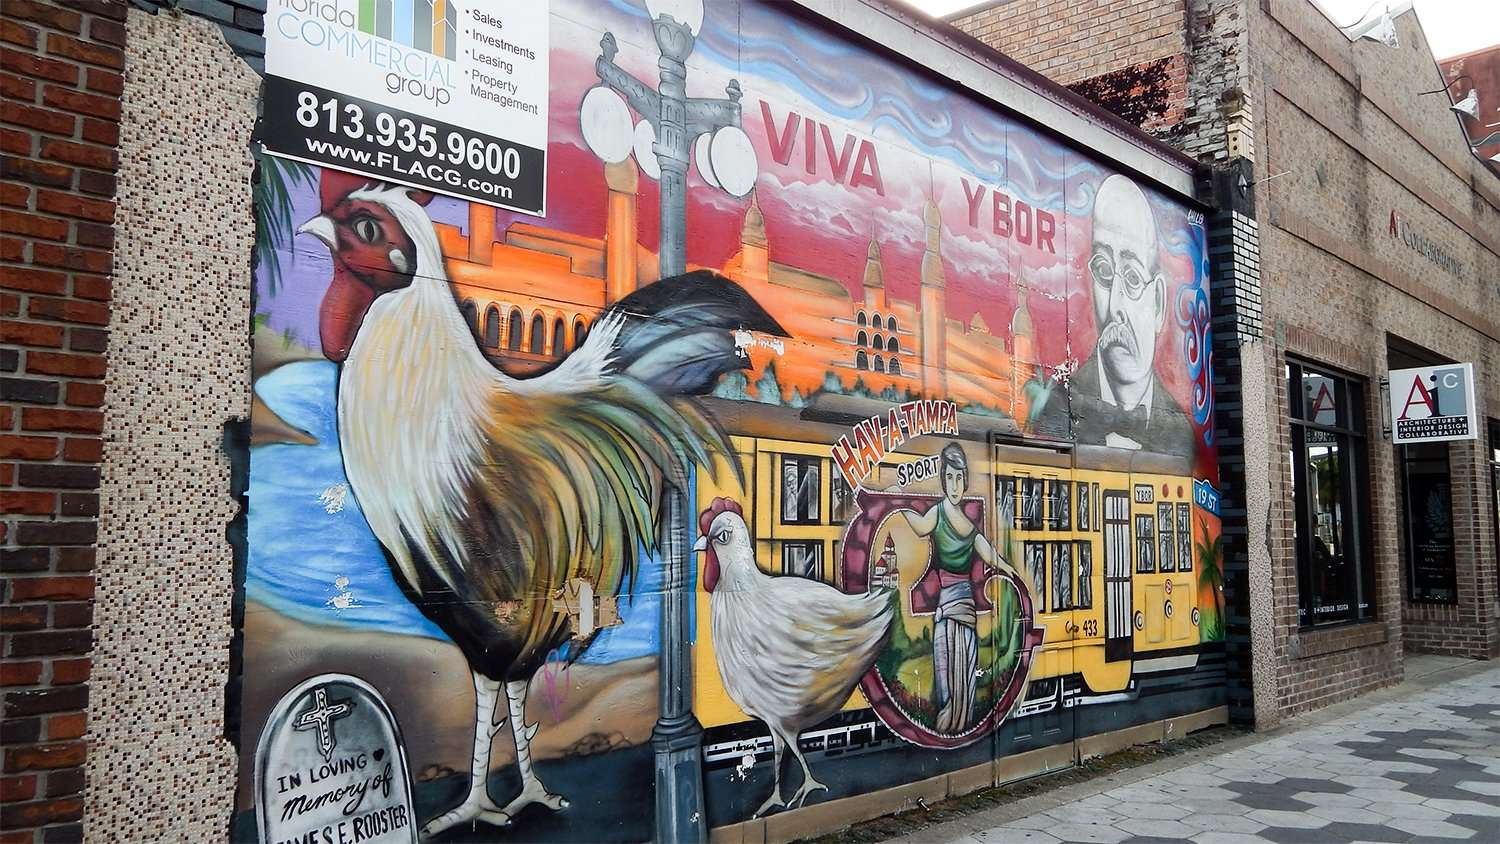 Viva ybor mural by chico garcia on historic 7th avenue for City of tampa mural